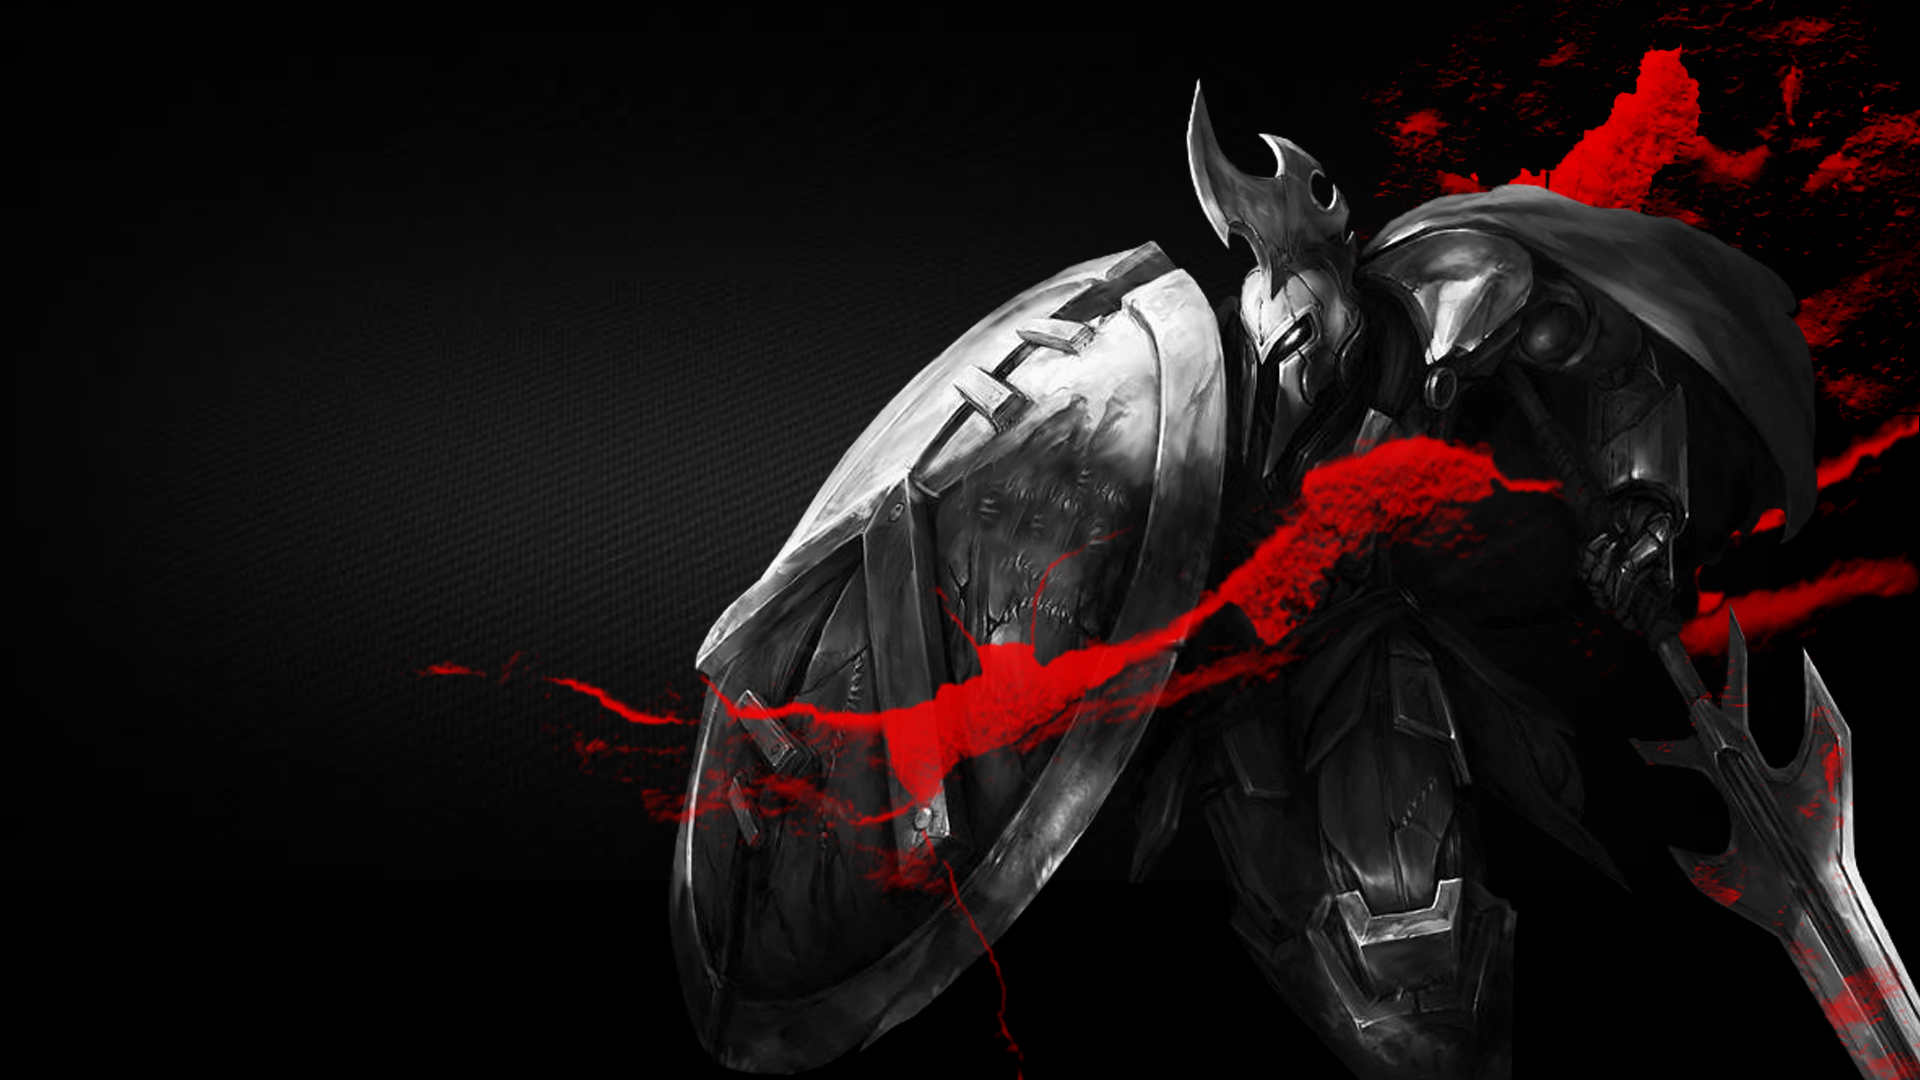 45 Hd Lol Wallpaper And Background League Of Legends Free Download